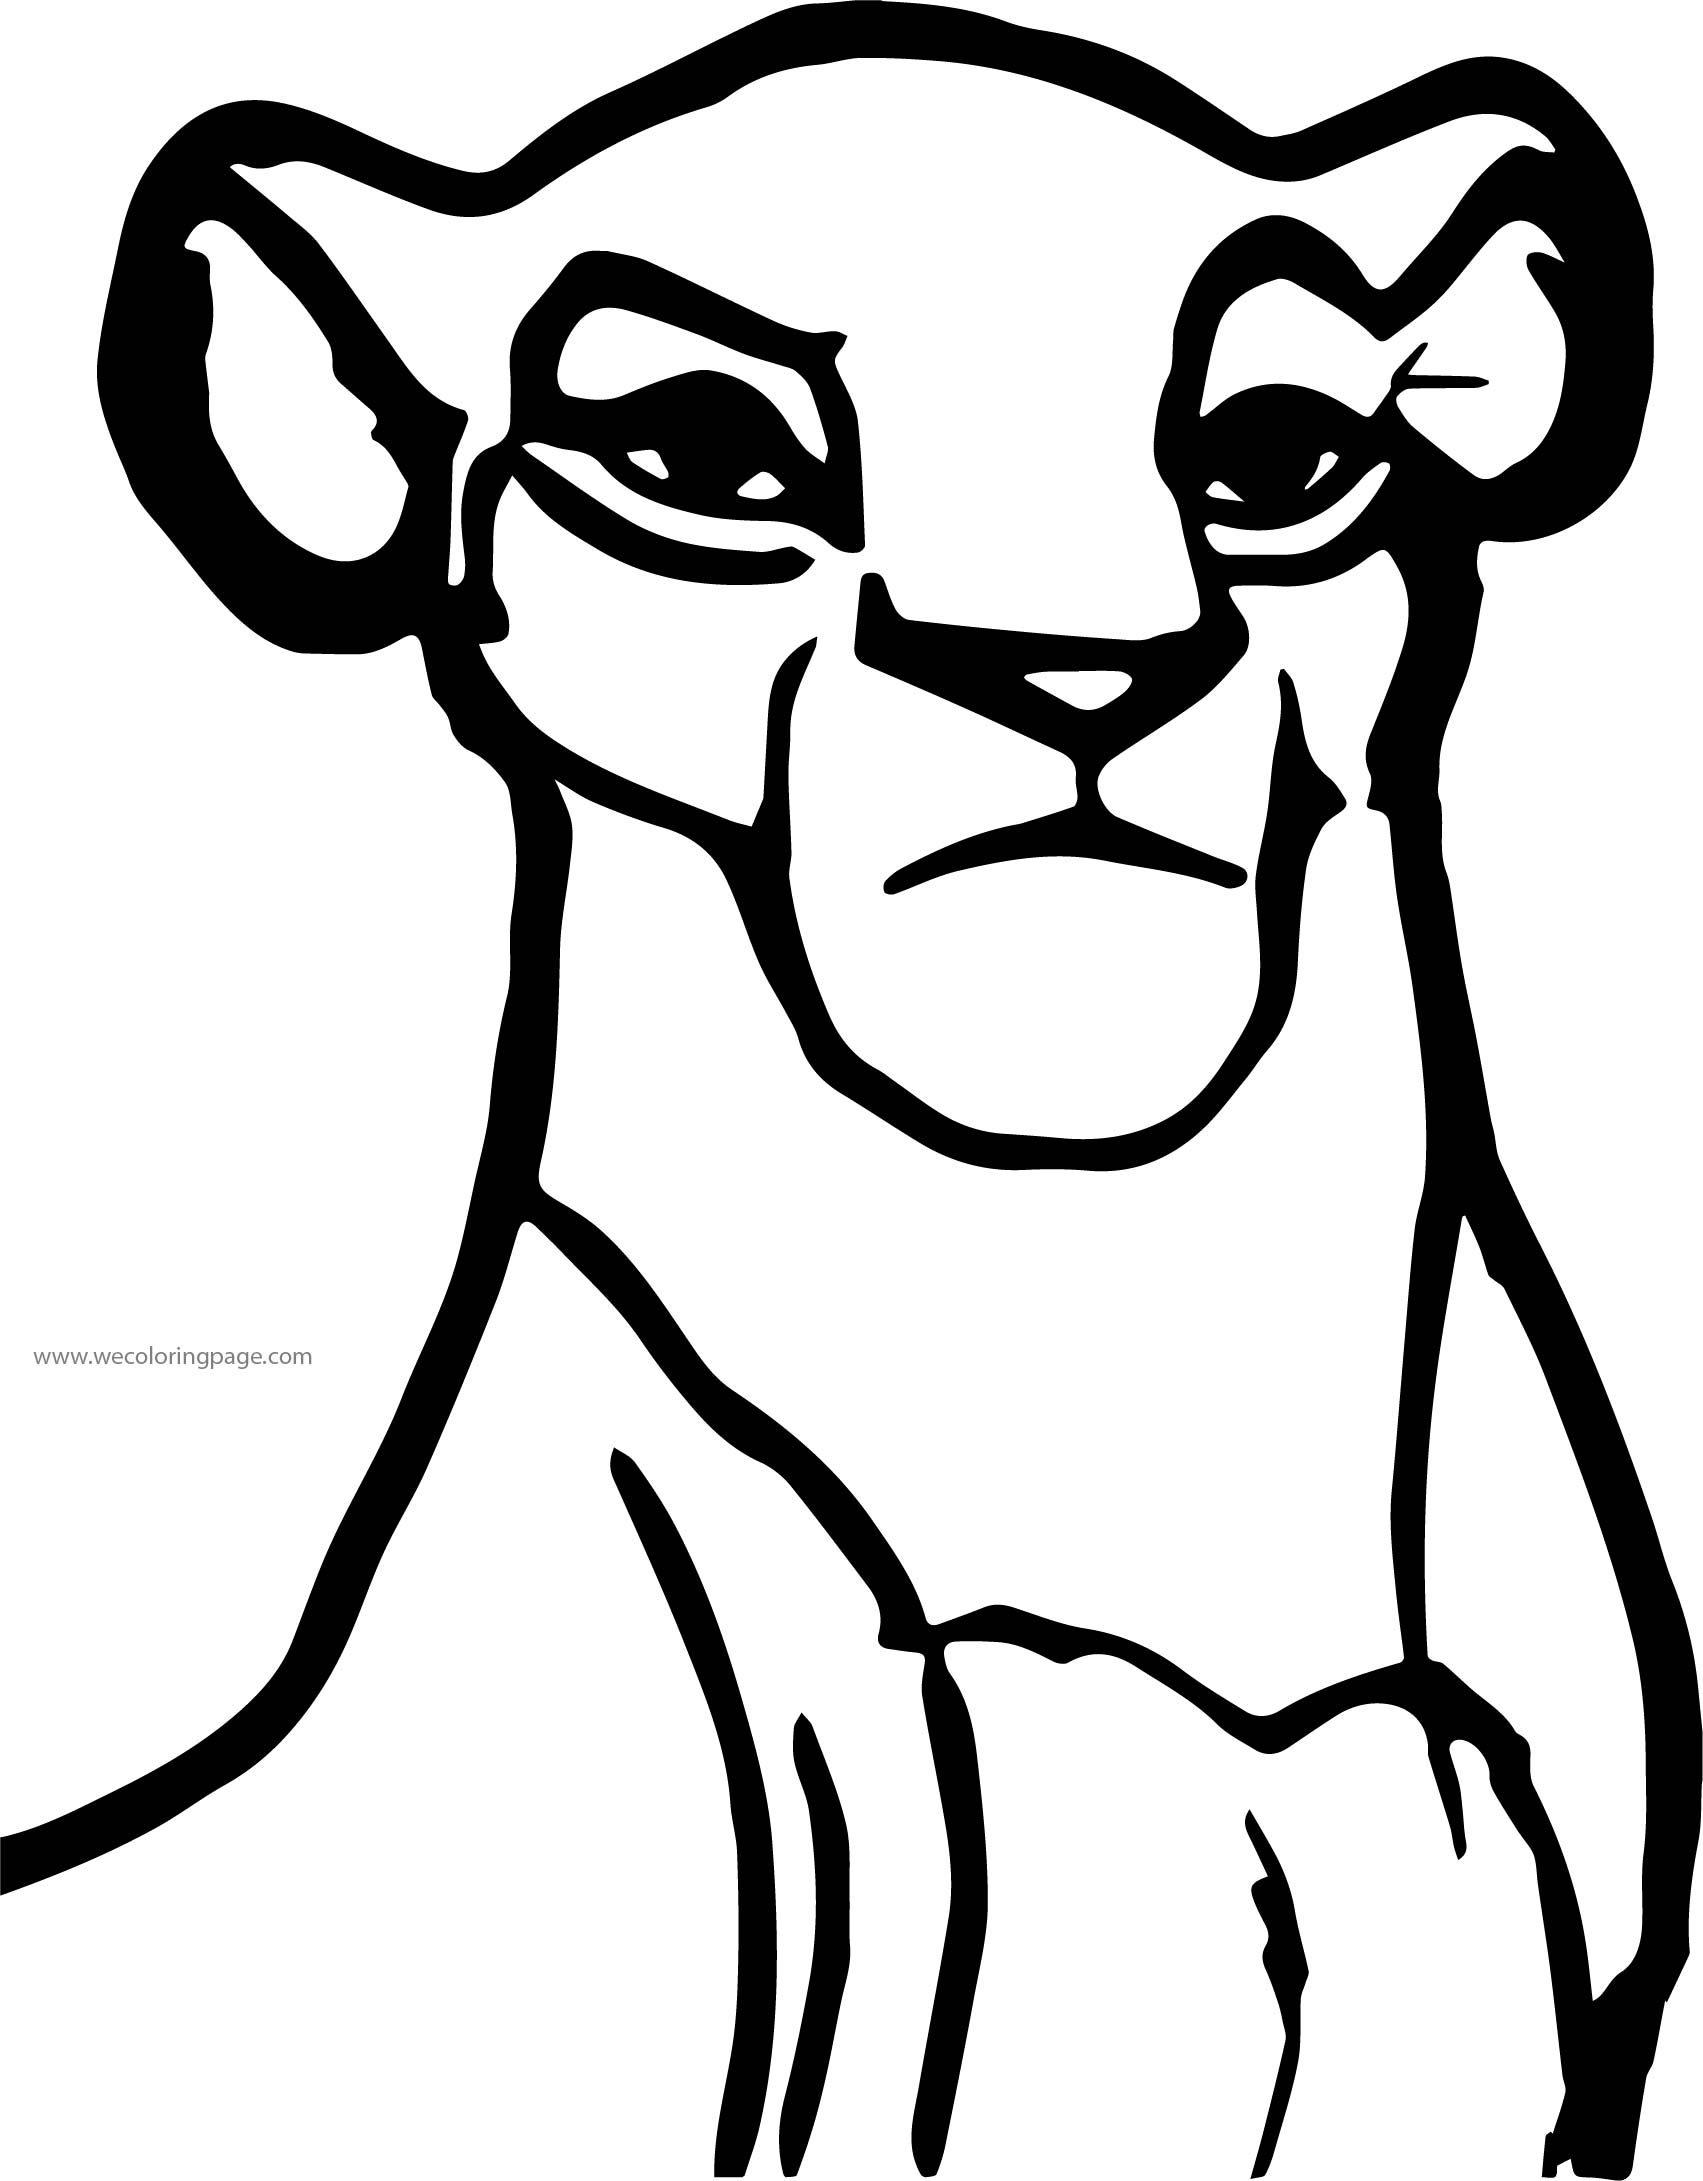 Sarafina Front View Coloring Page